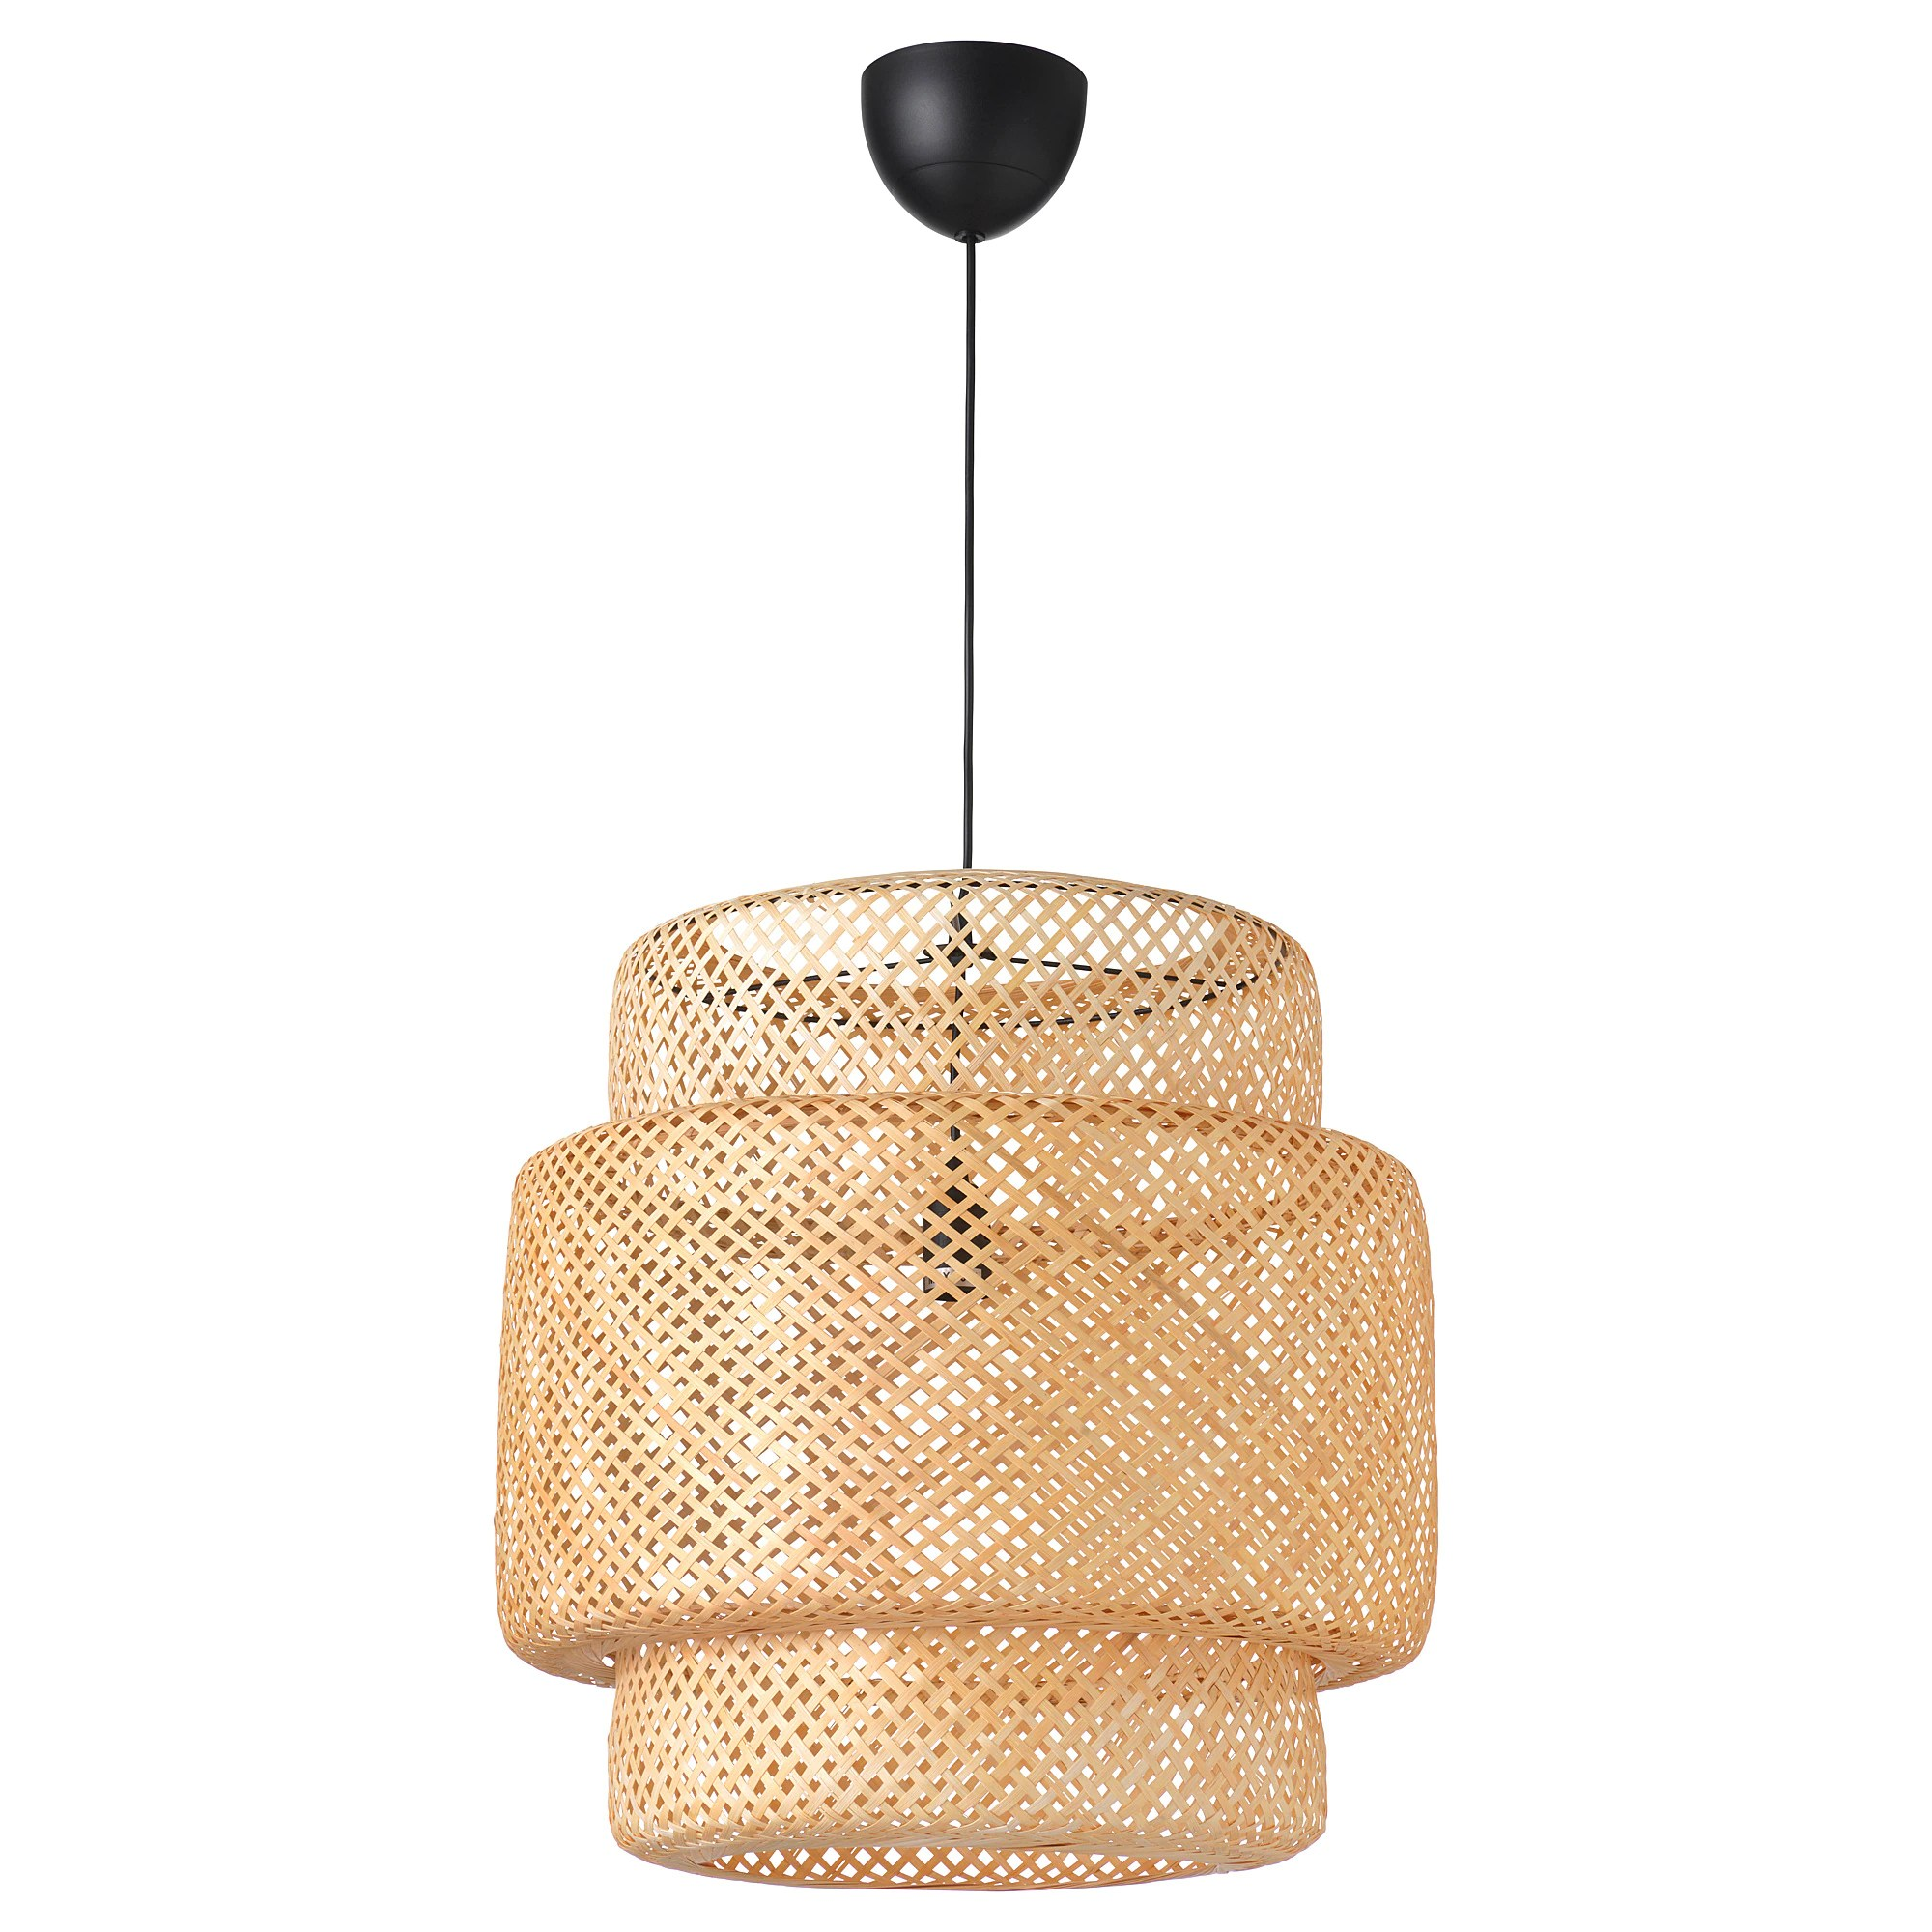 Suspension Ikea Cuivre Suspension Sinnerlig Bambou